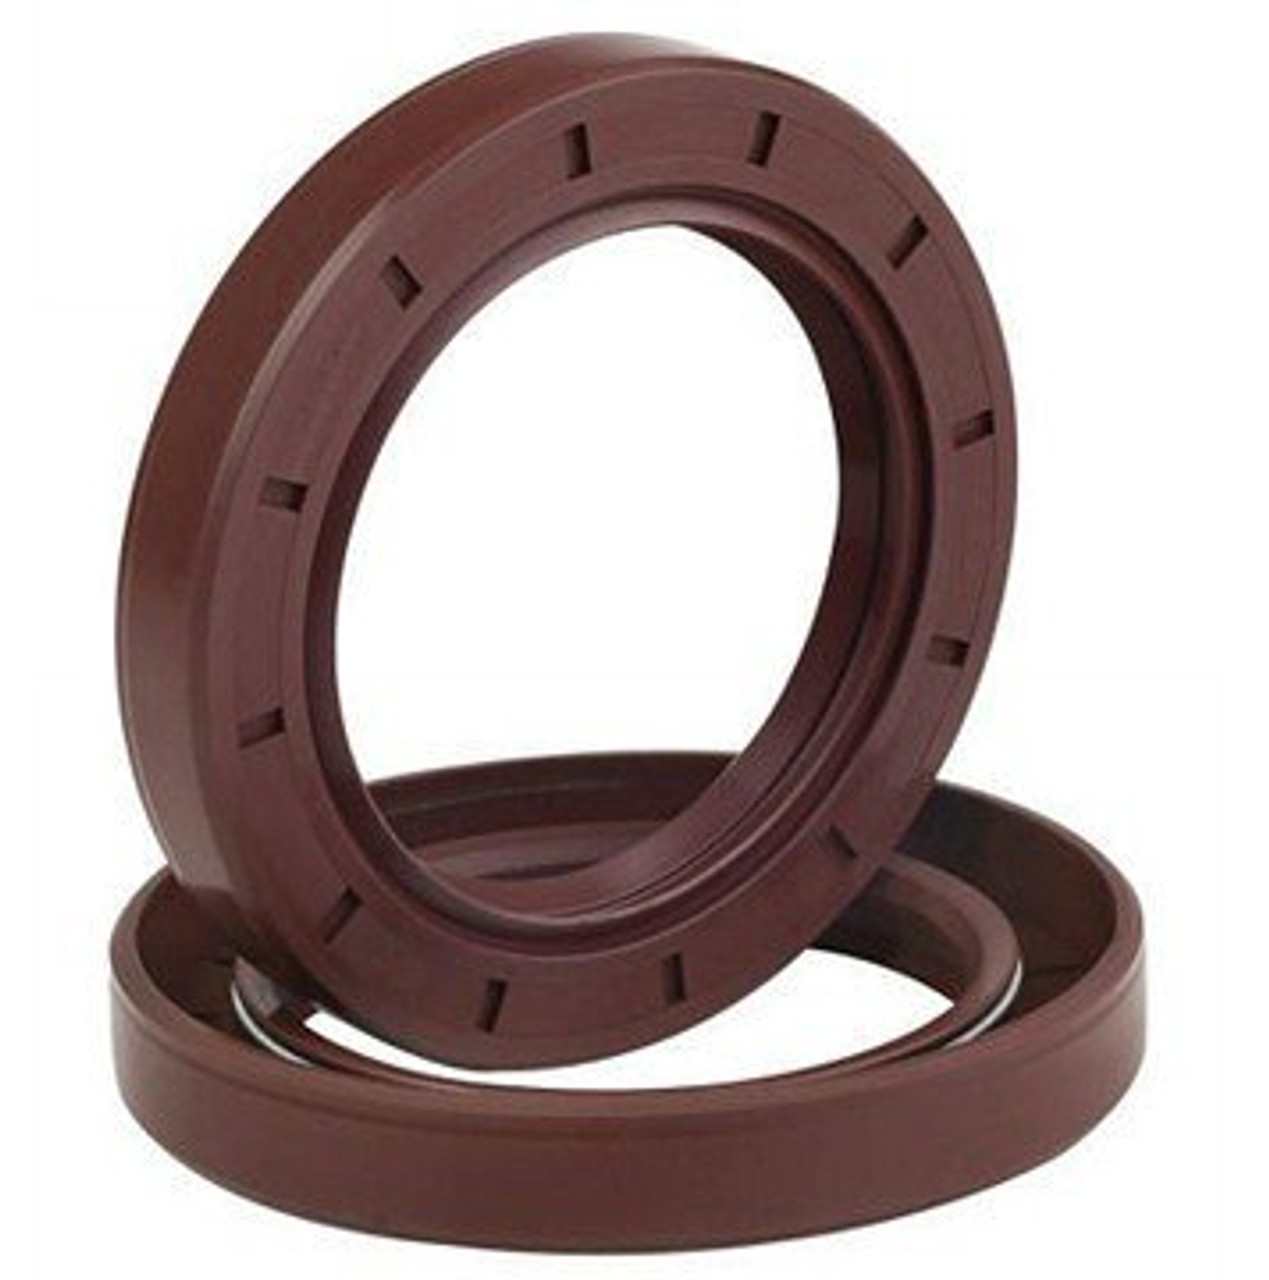 pack Rotary shaft oil seal 33 x 43 x height, model